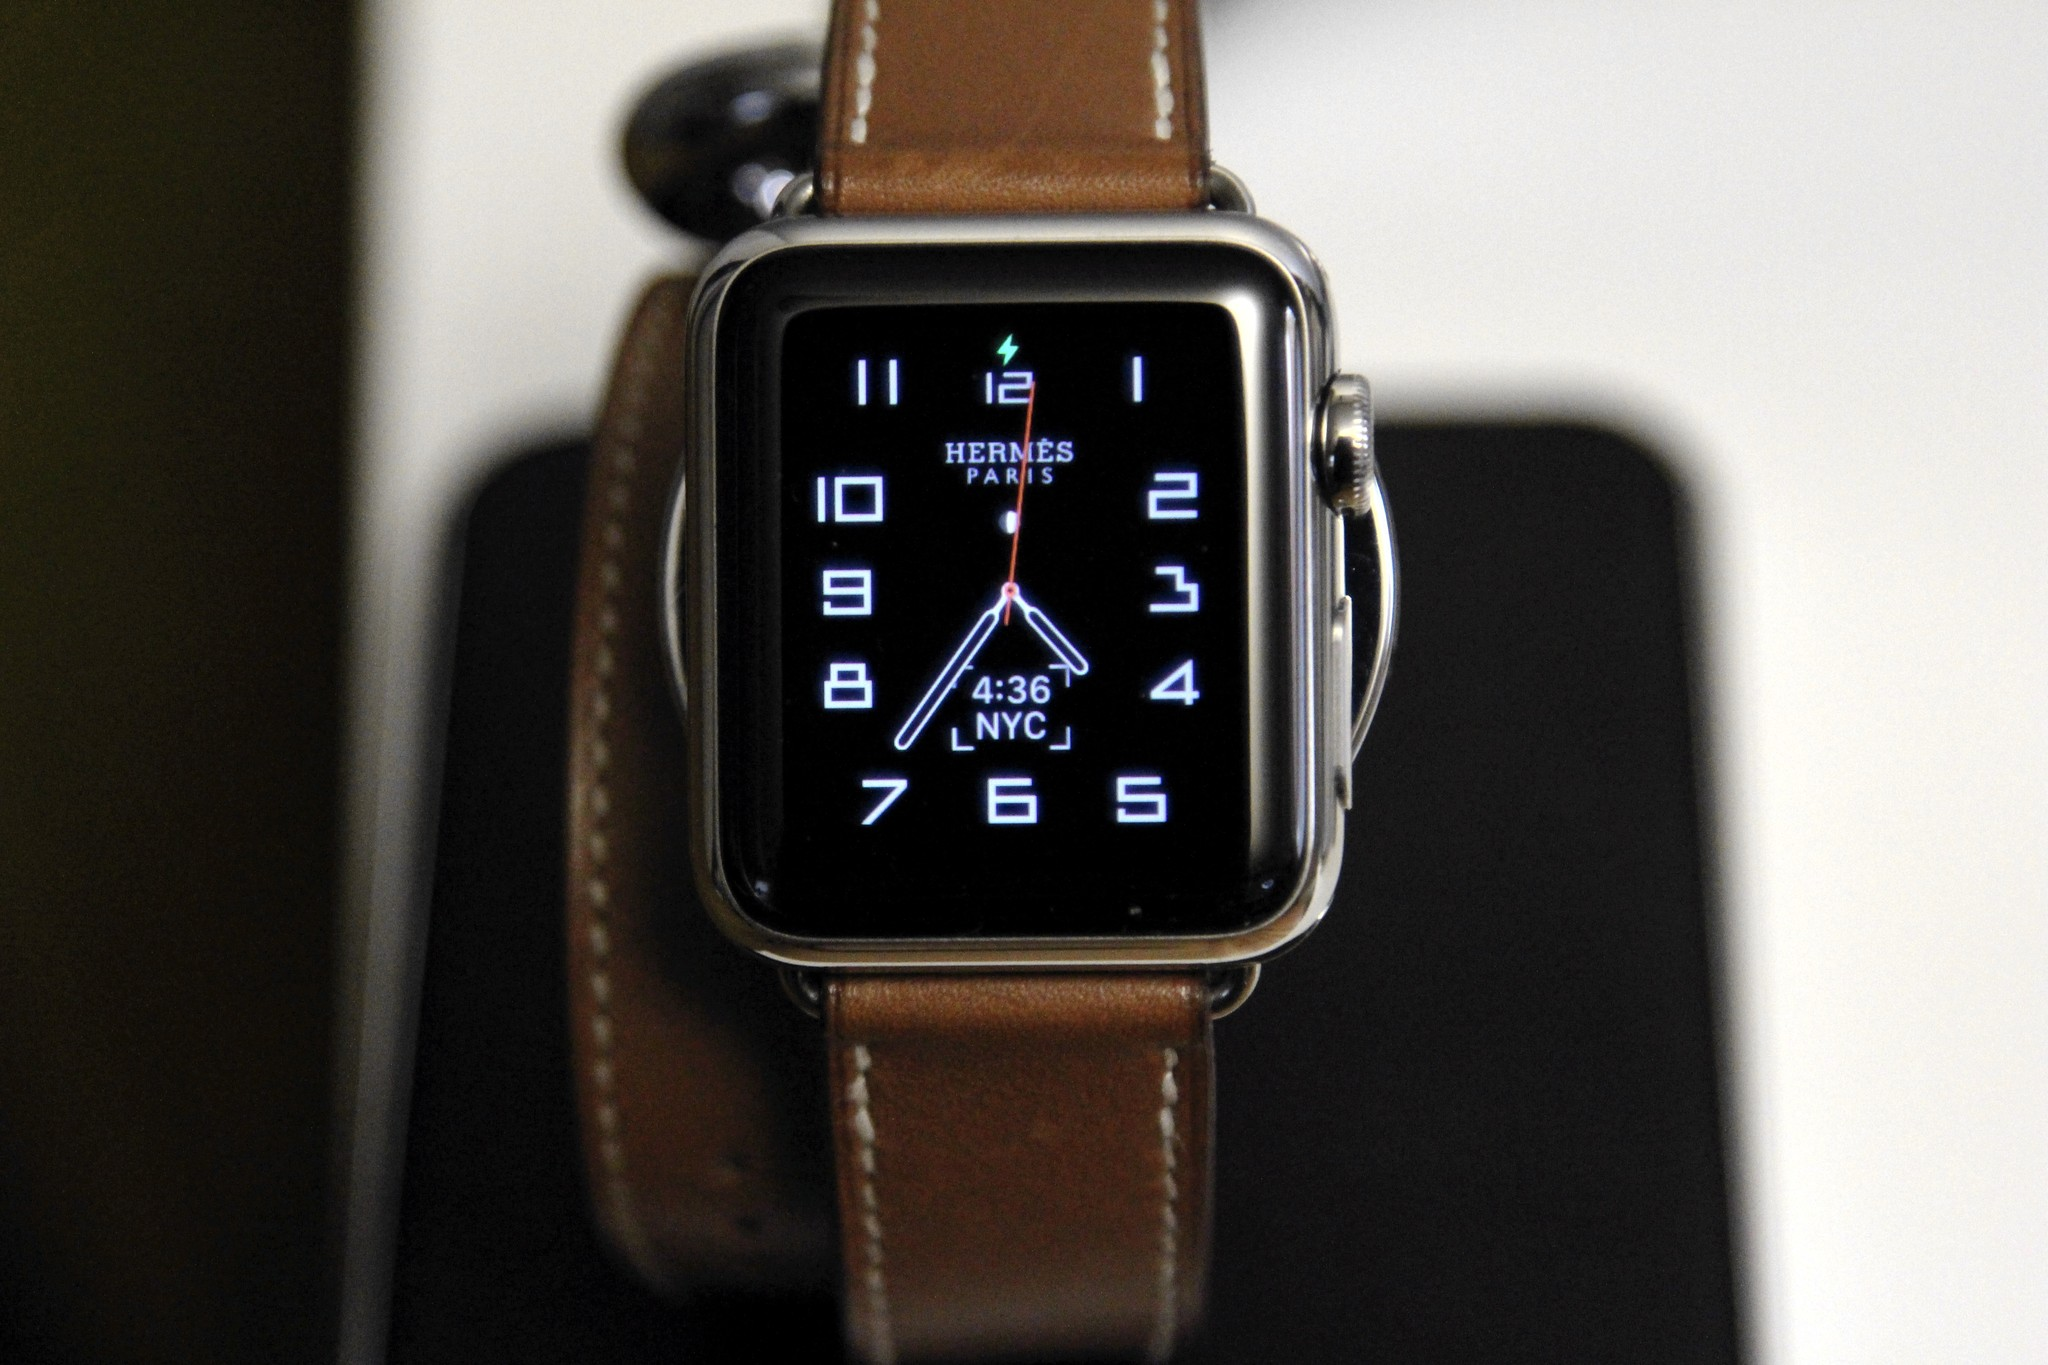 The Hermes Custom Apple Watch Face Gives Me Hope For Third